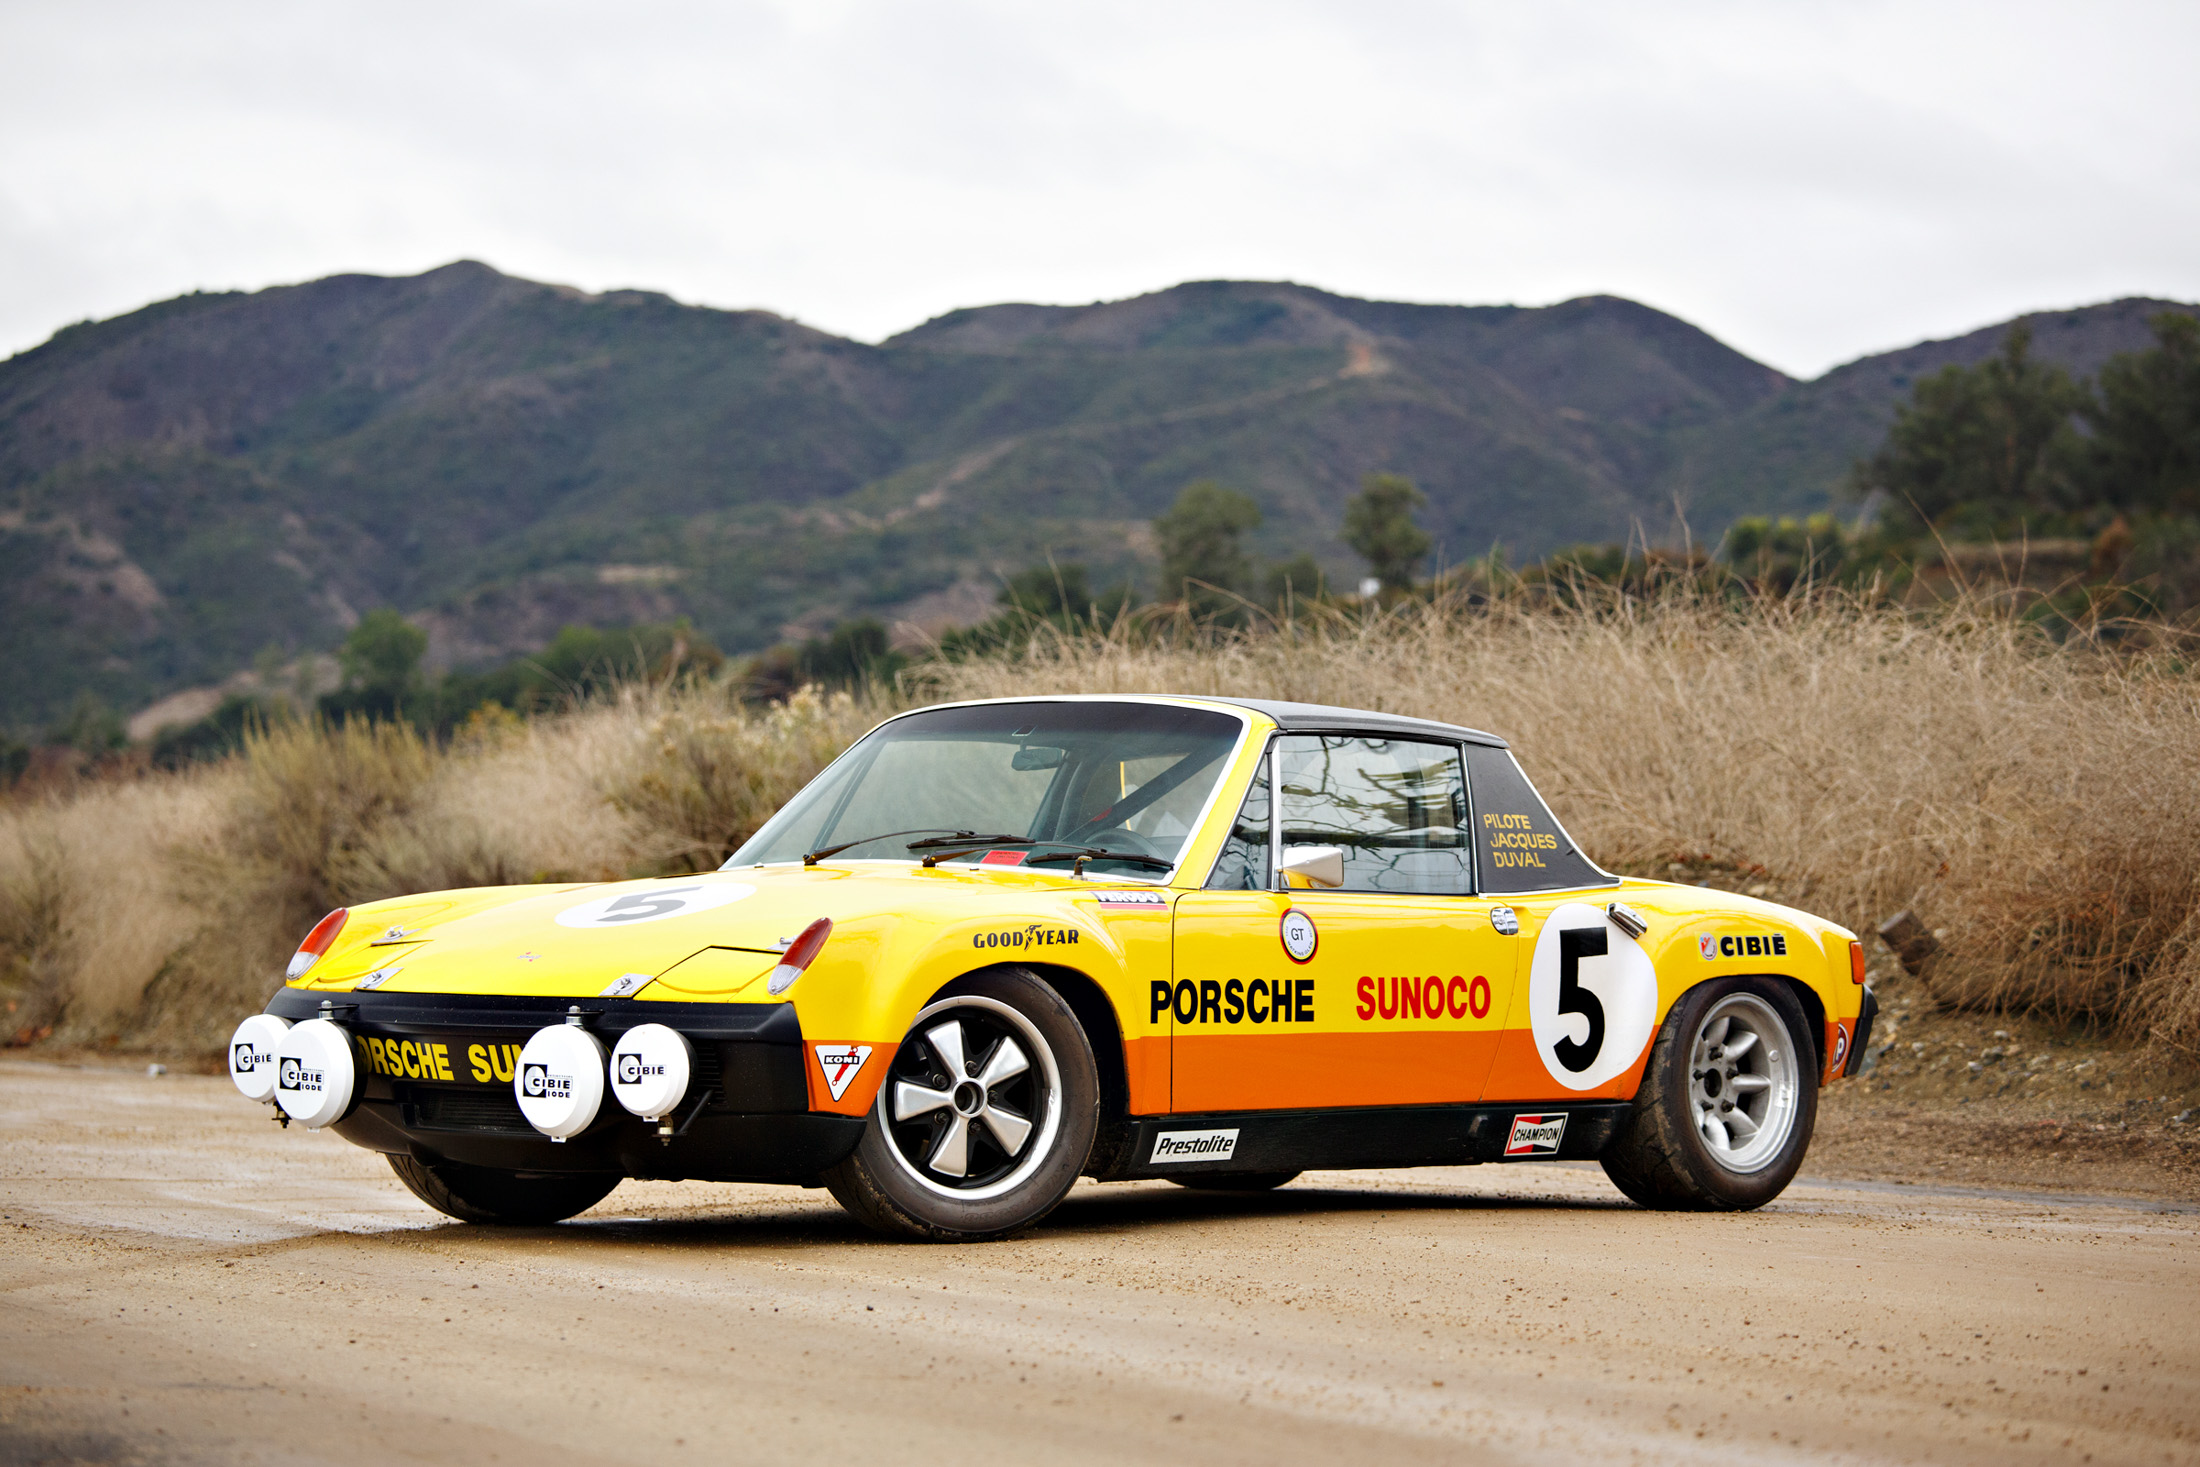 The Underloved Porsche 914 Could Be The Next Big Classic Car Bloomberg